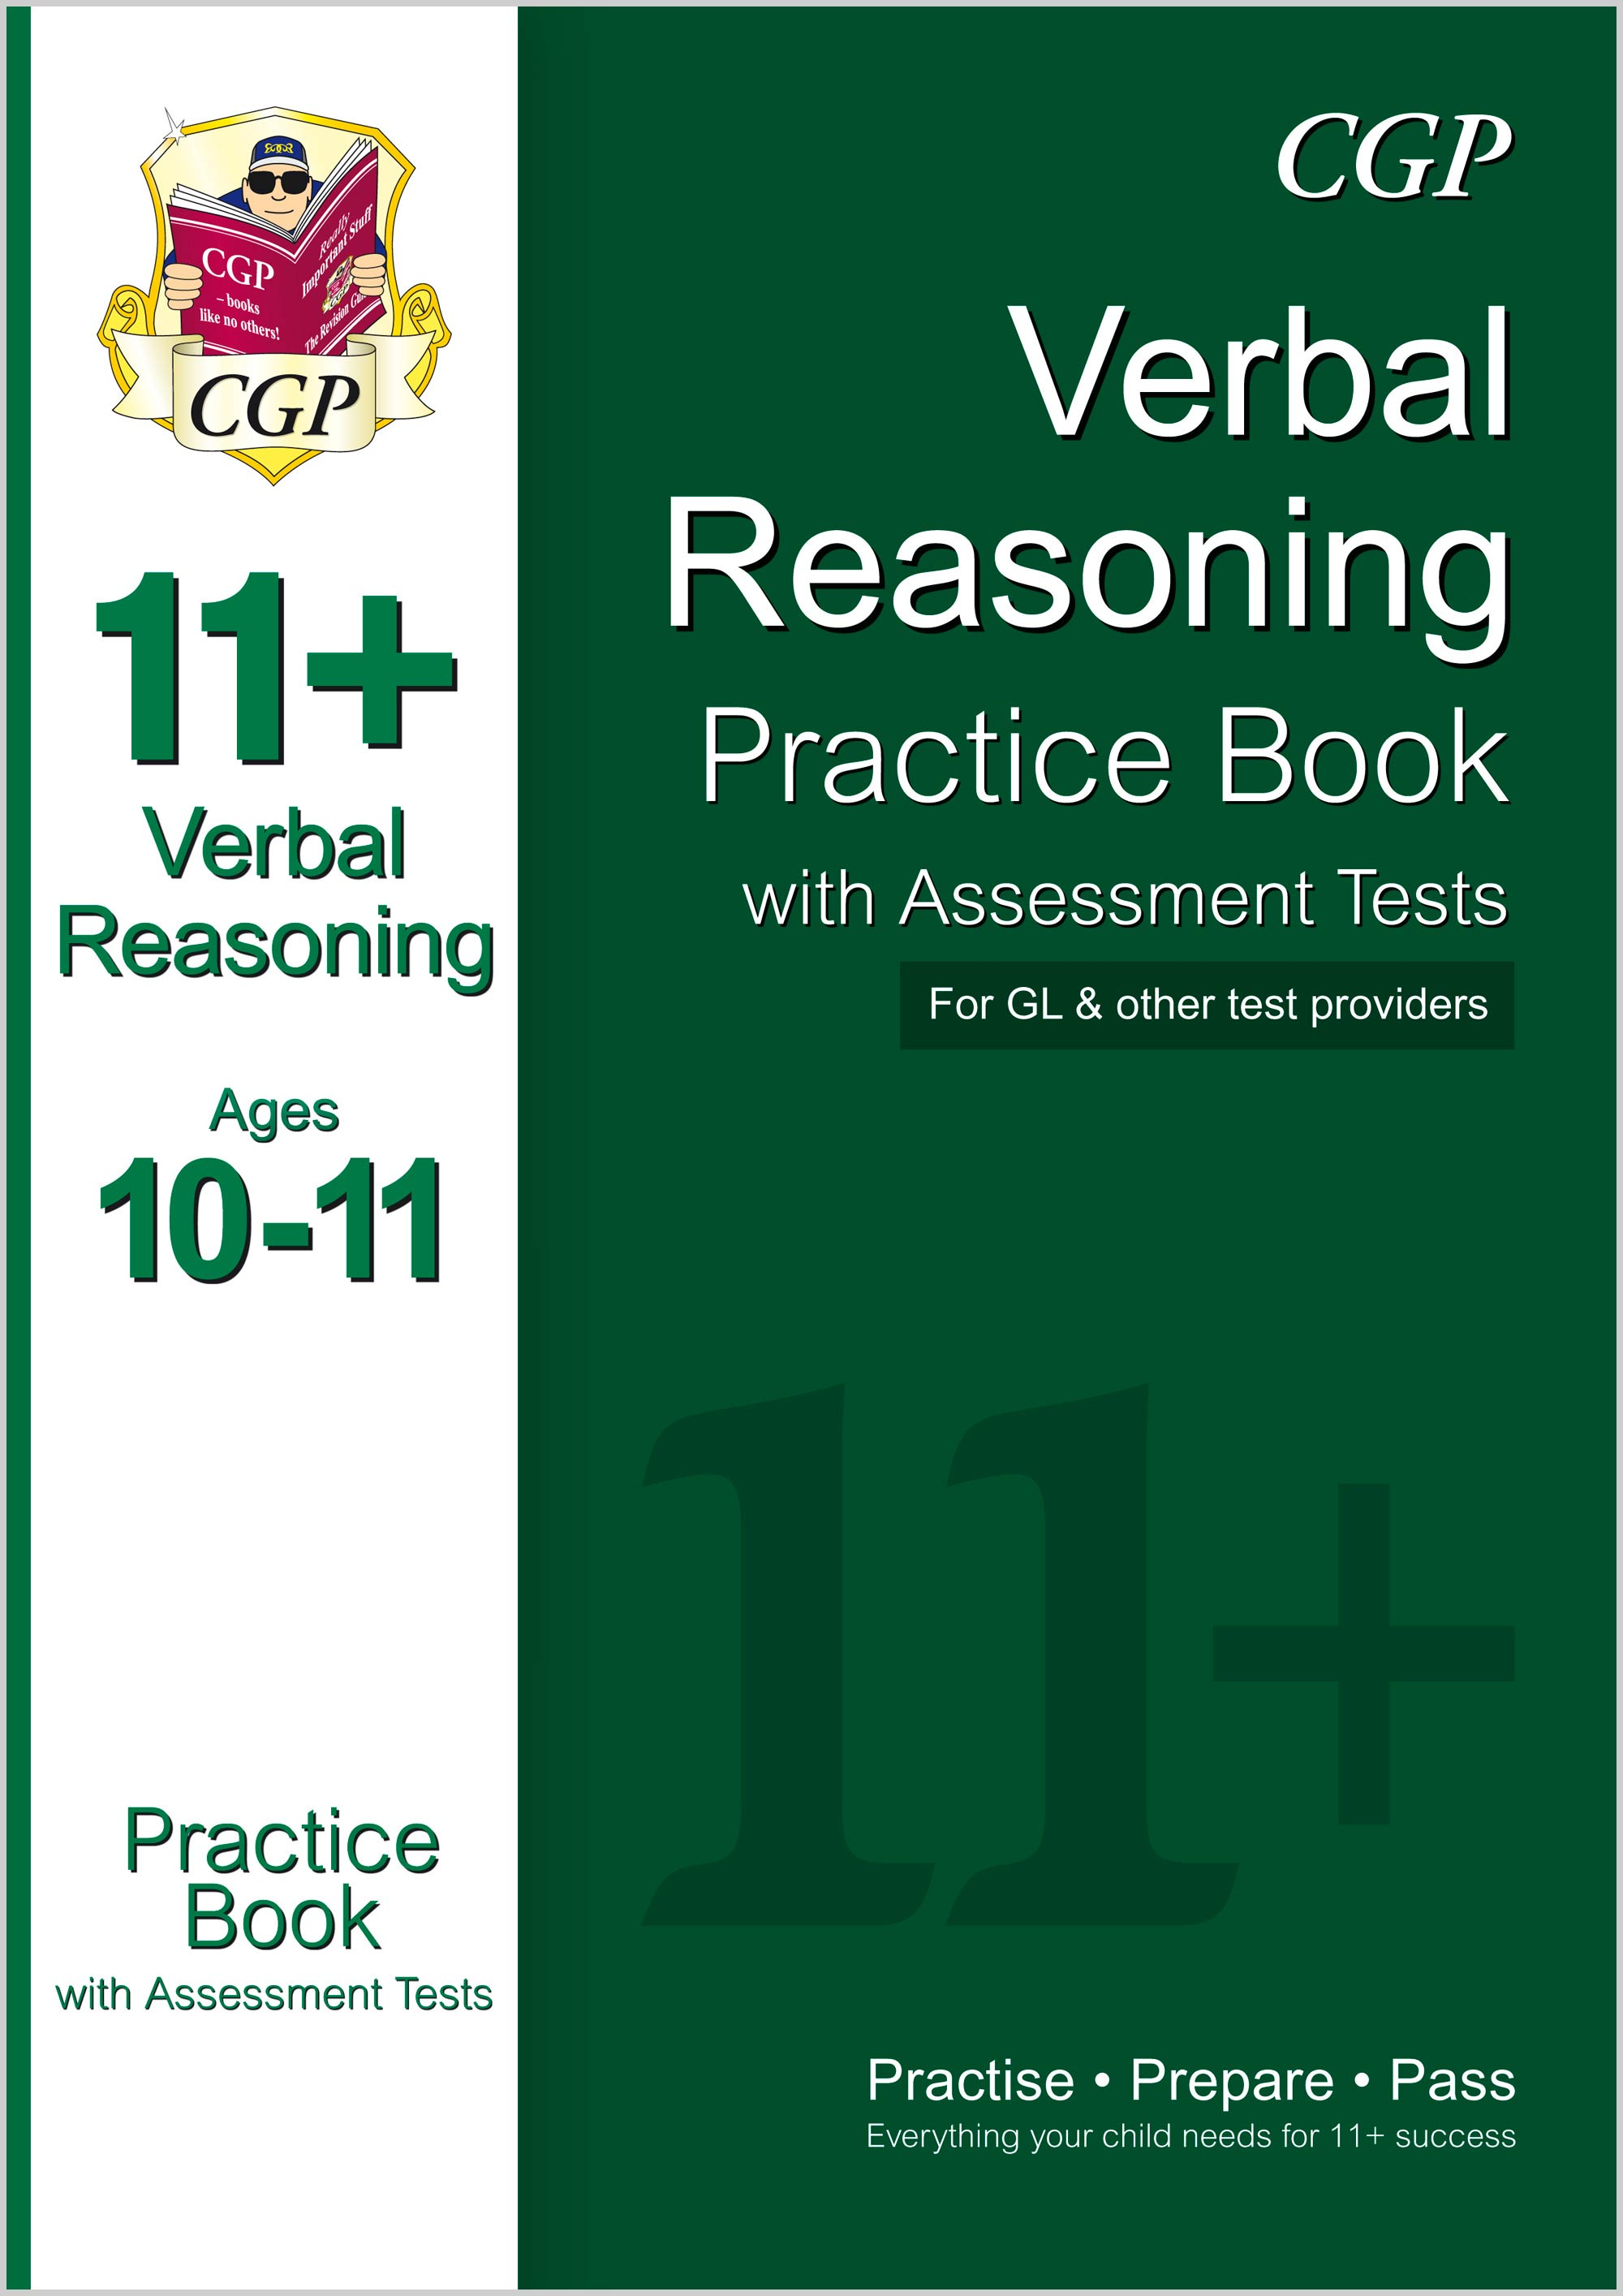 V6QE1 - 11+ Verbal Reasoning Practice Book with Assessment Tests Ages 10-11 (for GL & Other Test Pro